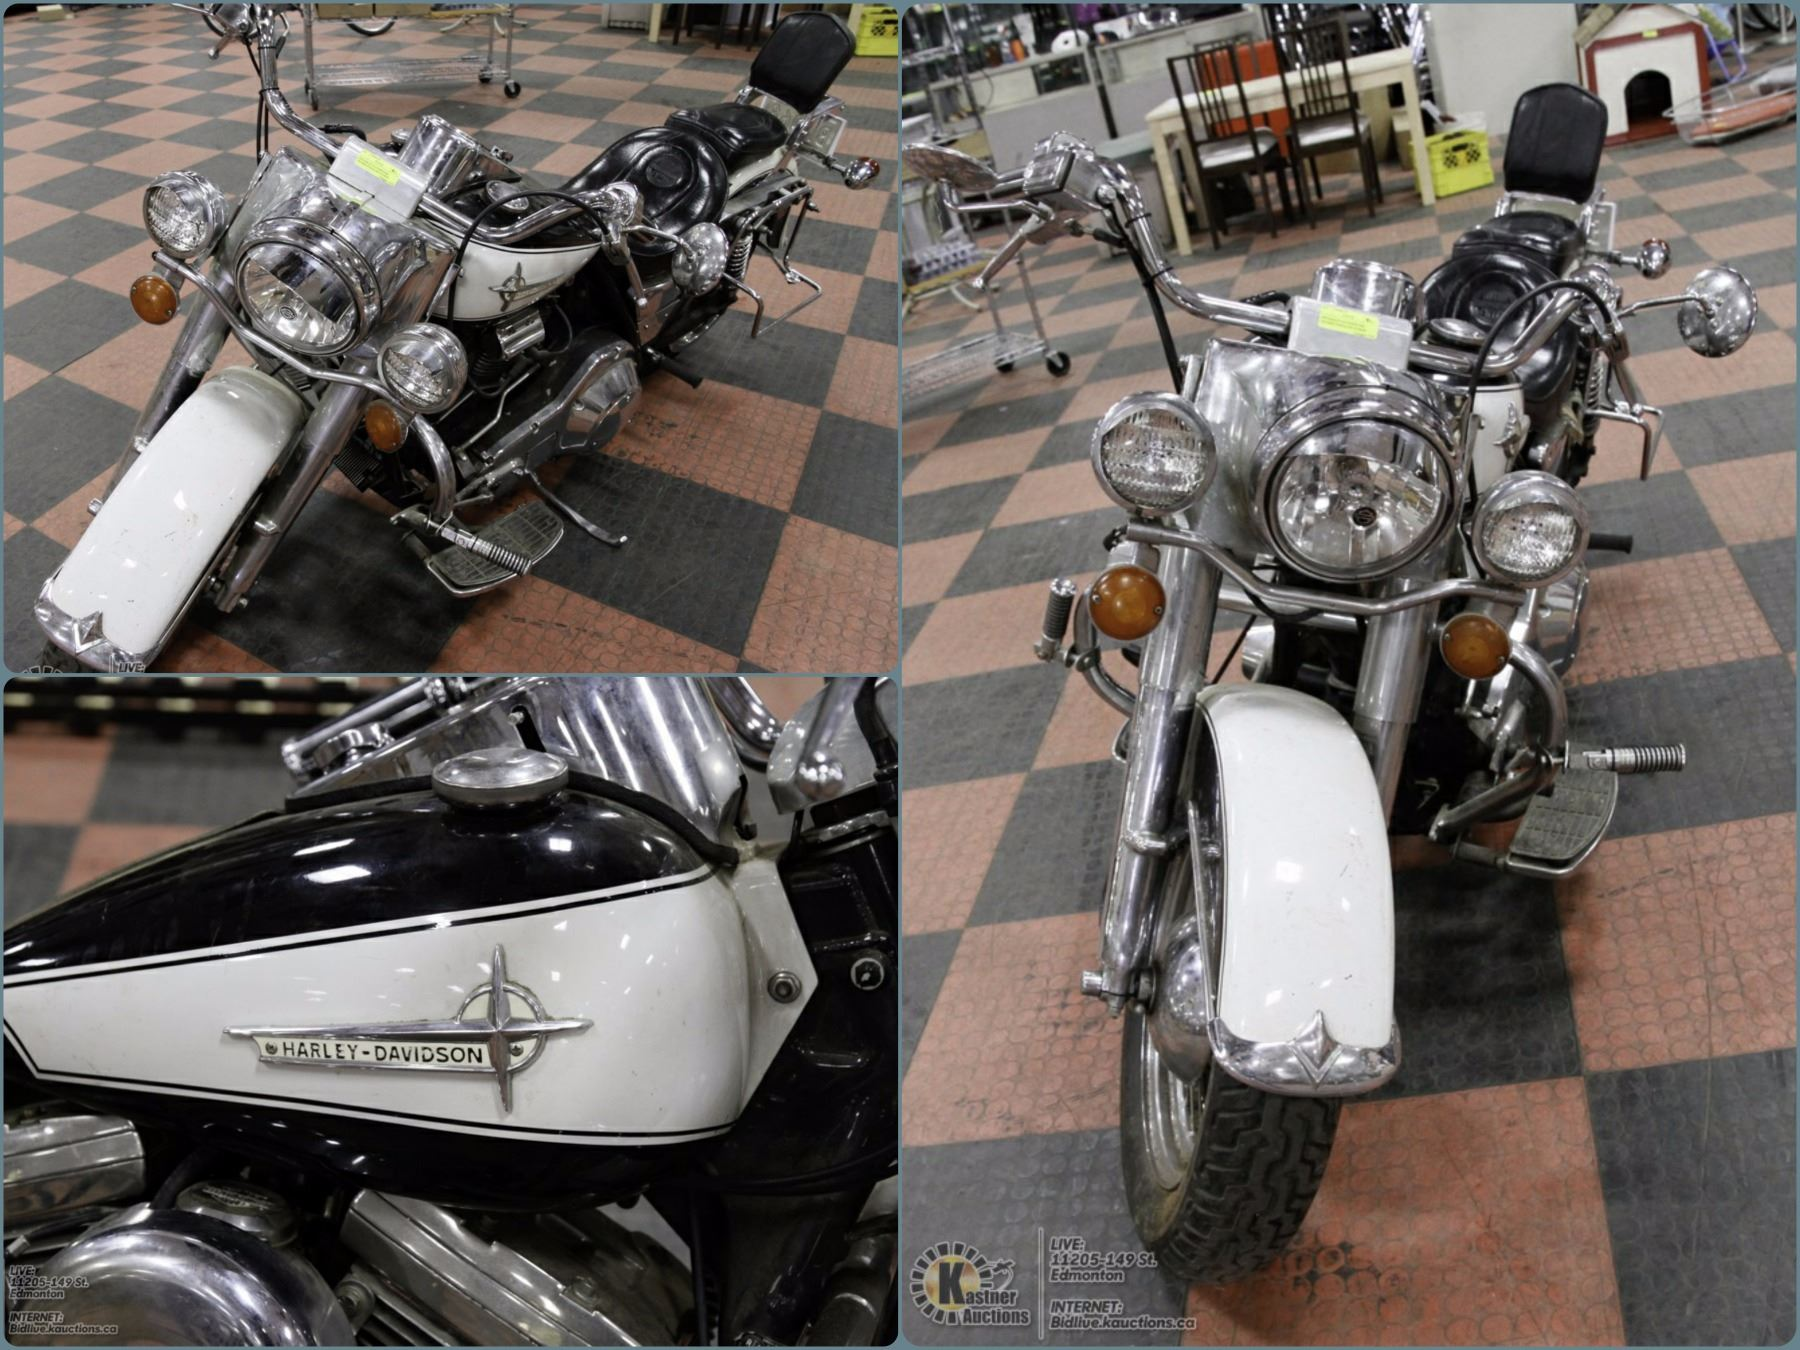 FEATURED ITEM : 1990 HARLEY FXR CRUISER LOT 370